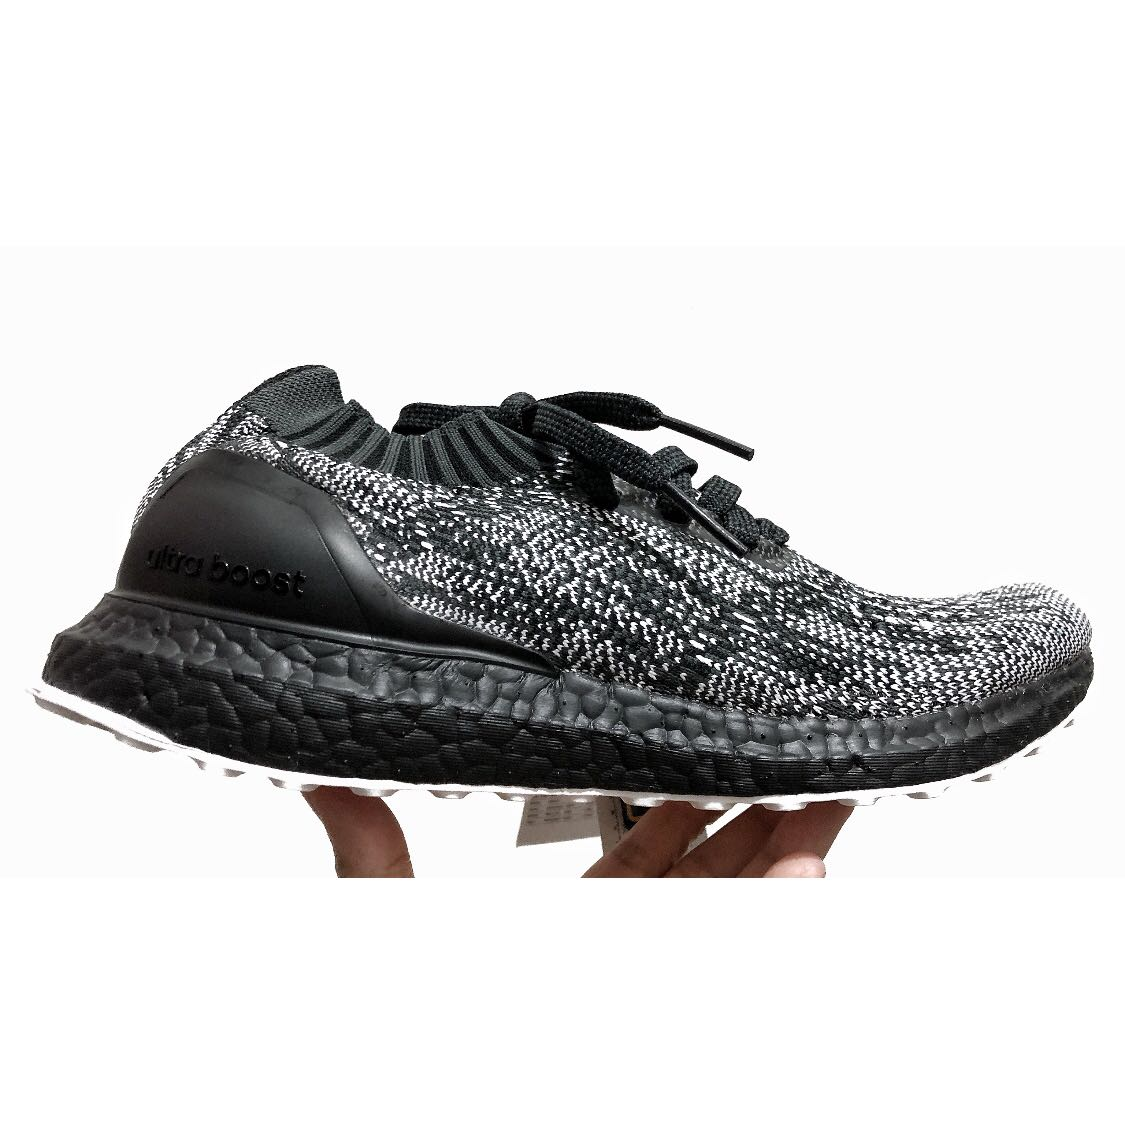 20c214924d95a 🎗UNUSED Adidas Ultraboost Uncaged S80698